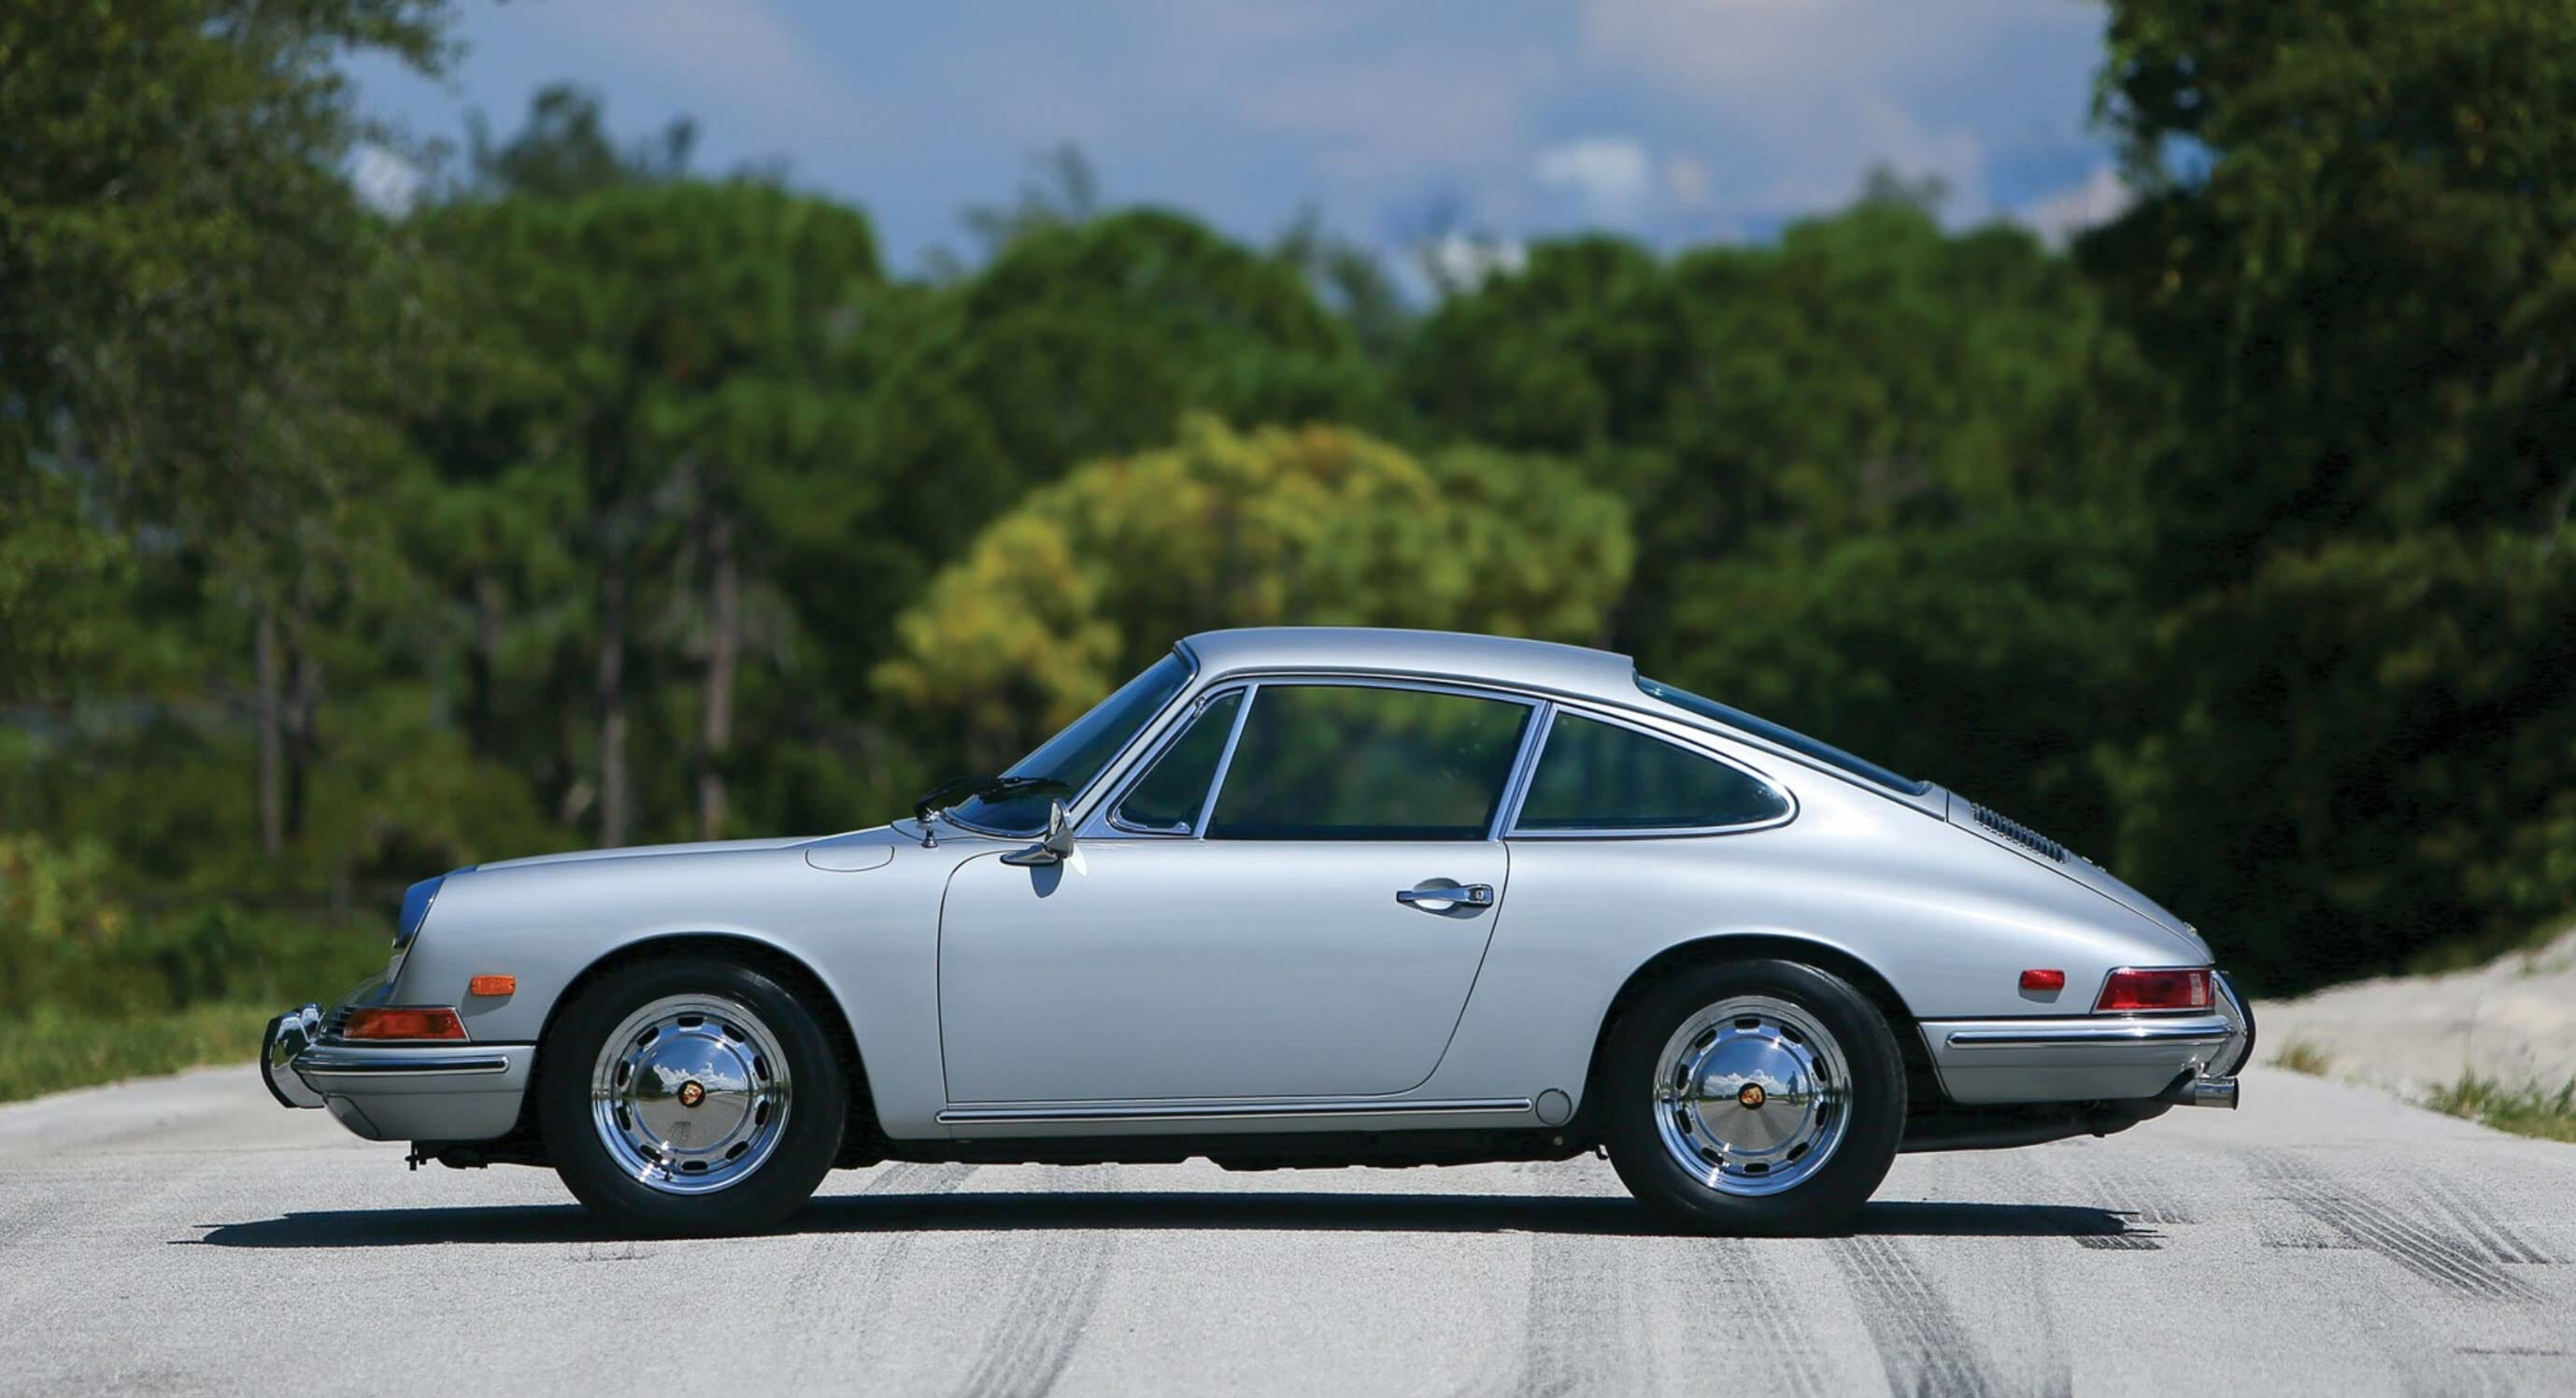 What Makes This Porsche 911 Sportomatic Worth Over £200k?